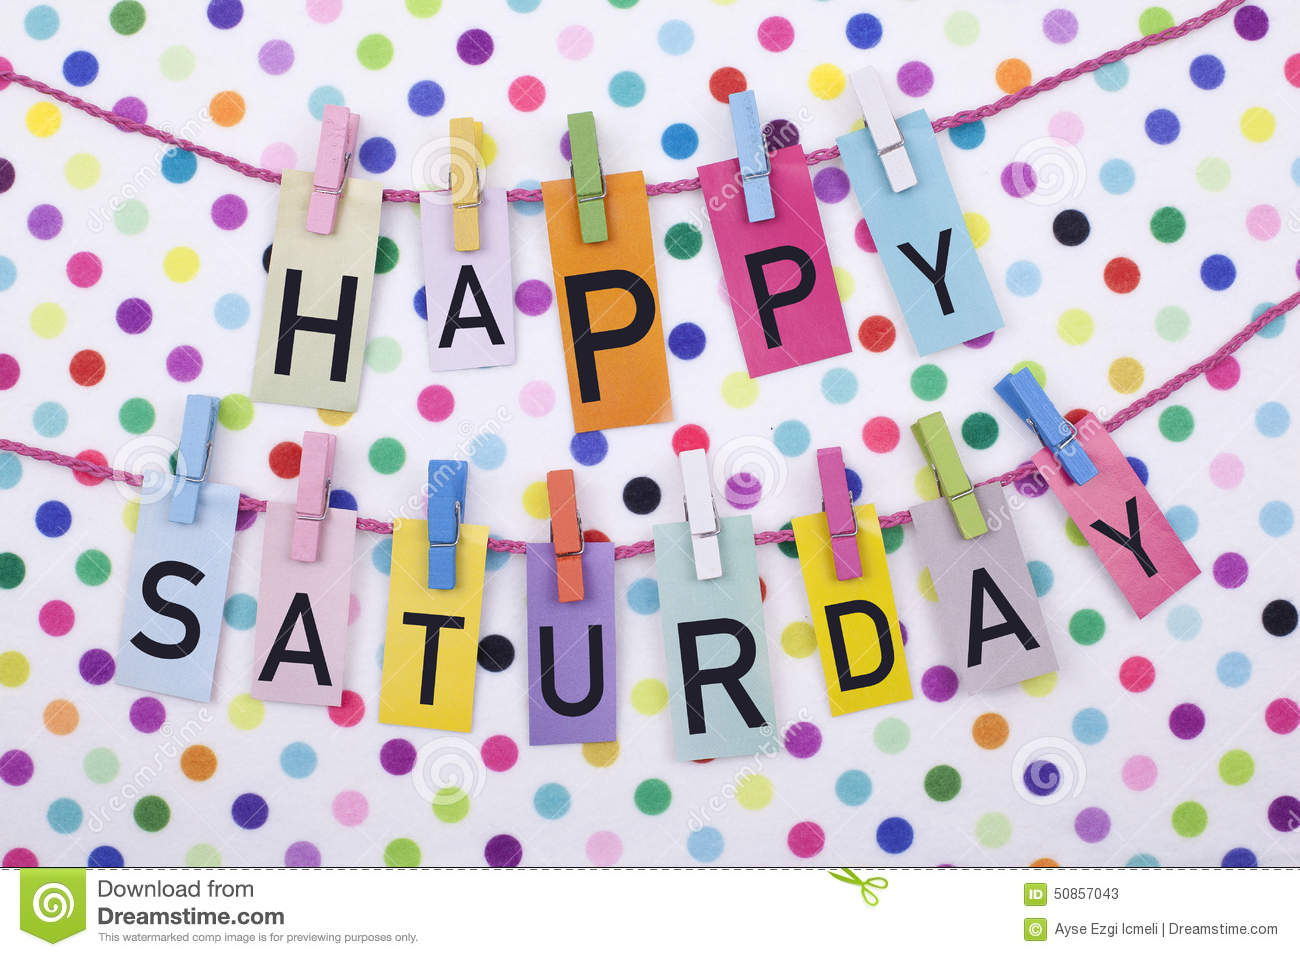 Cheerful colorful happy saturday note message background.